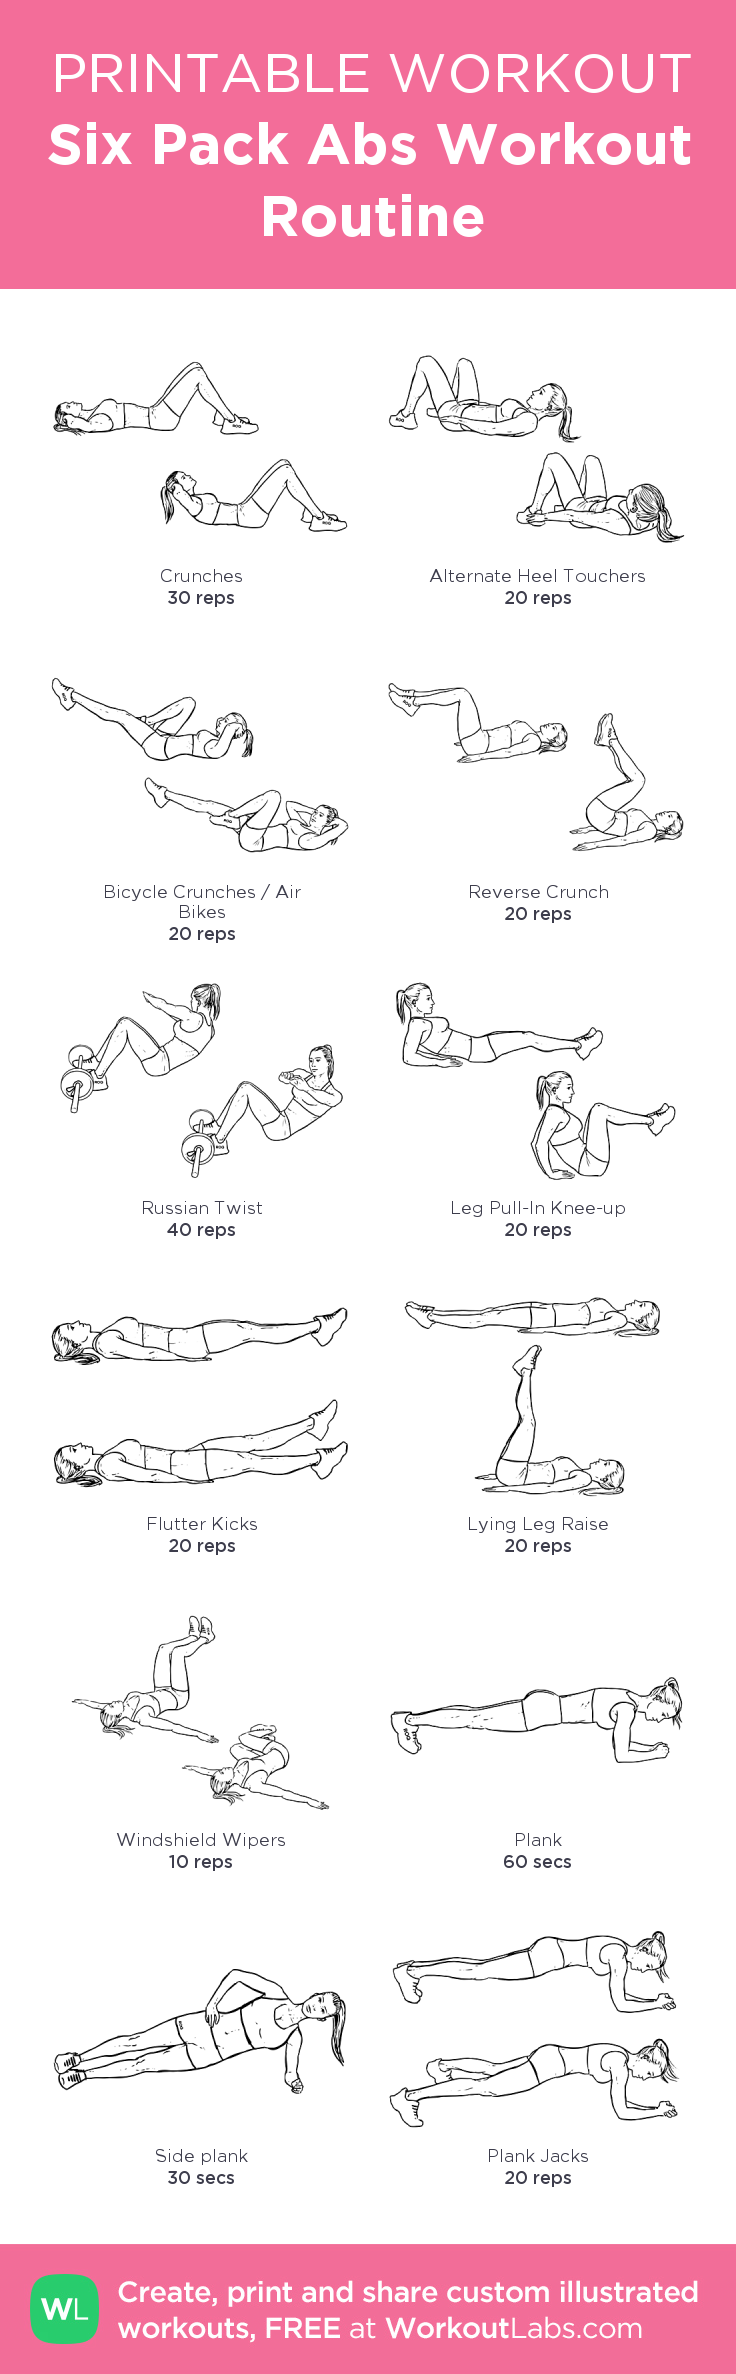 photograph relating to Printable Ab Workout titled Develop Killer Stomach muscles With This 10 Min Work out amazing workout routines